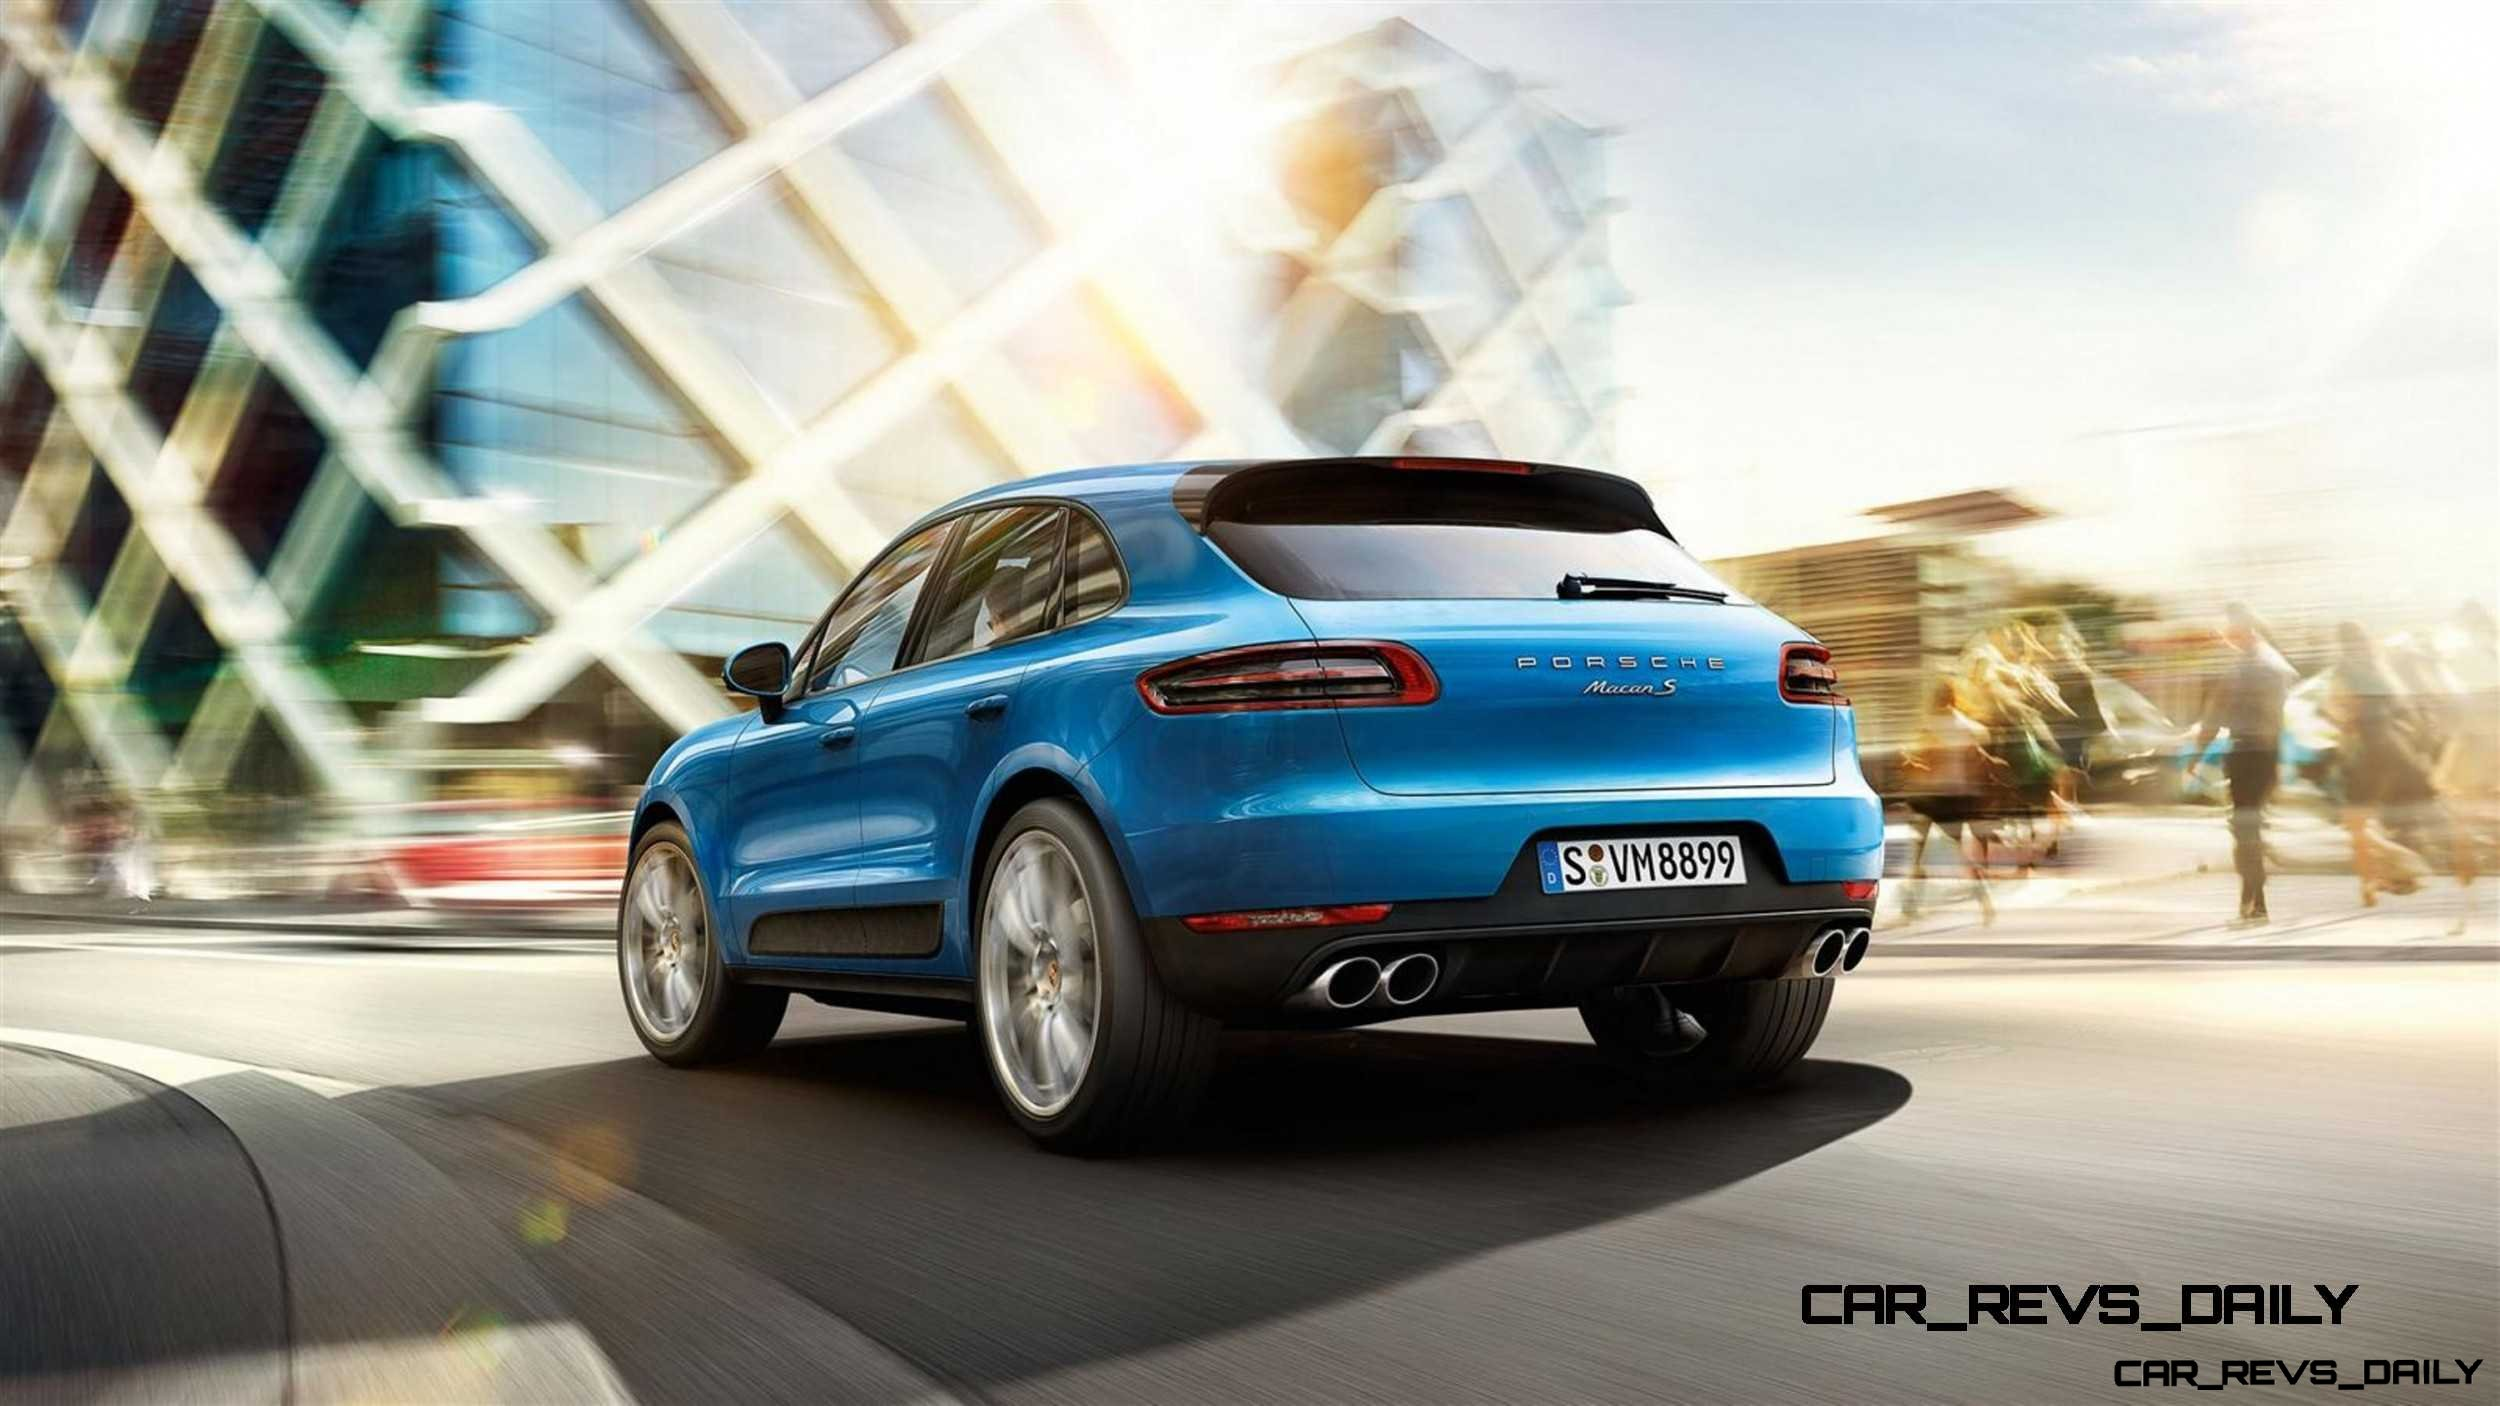 2015 Porsche Macan - Latest Images - CarRevsDaily.com 29